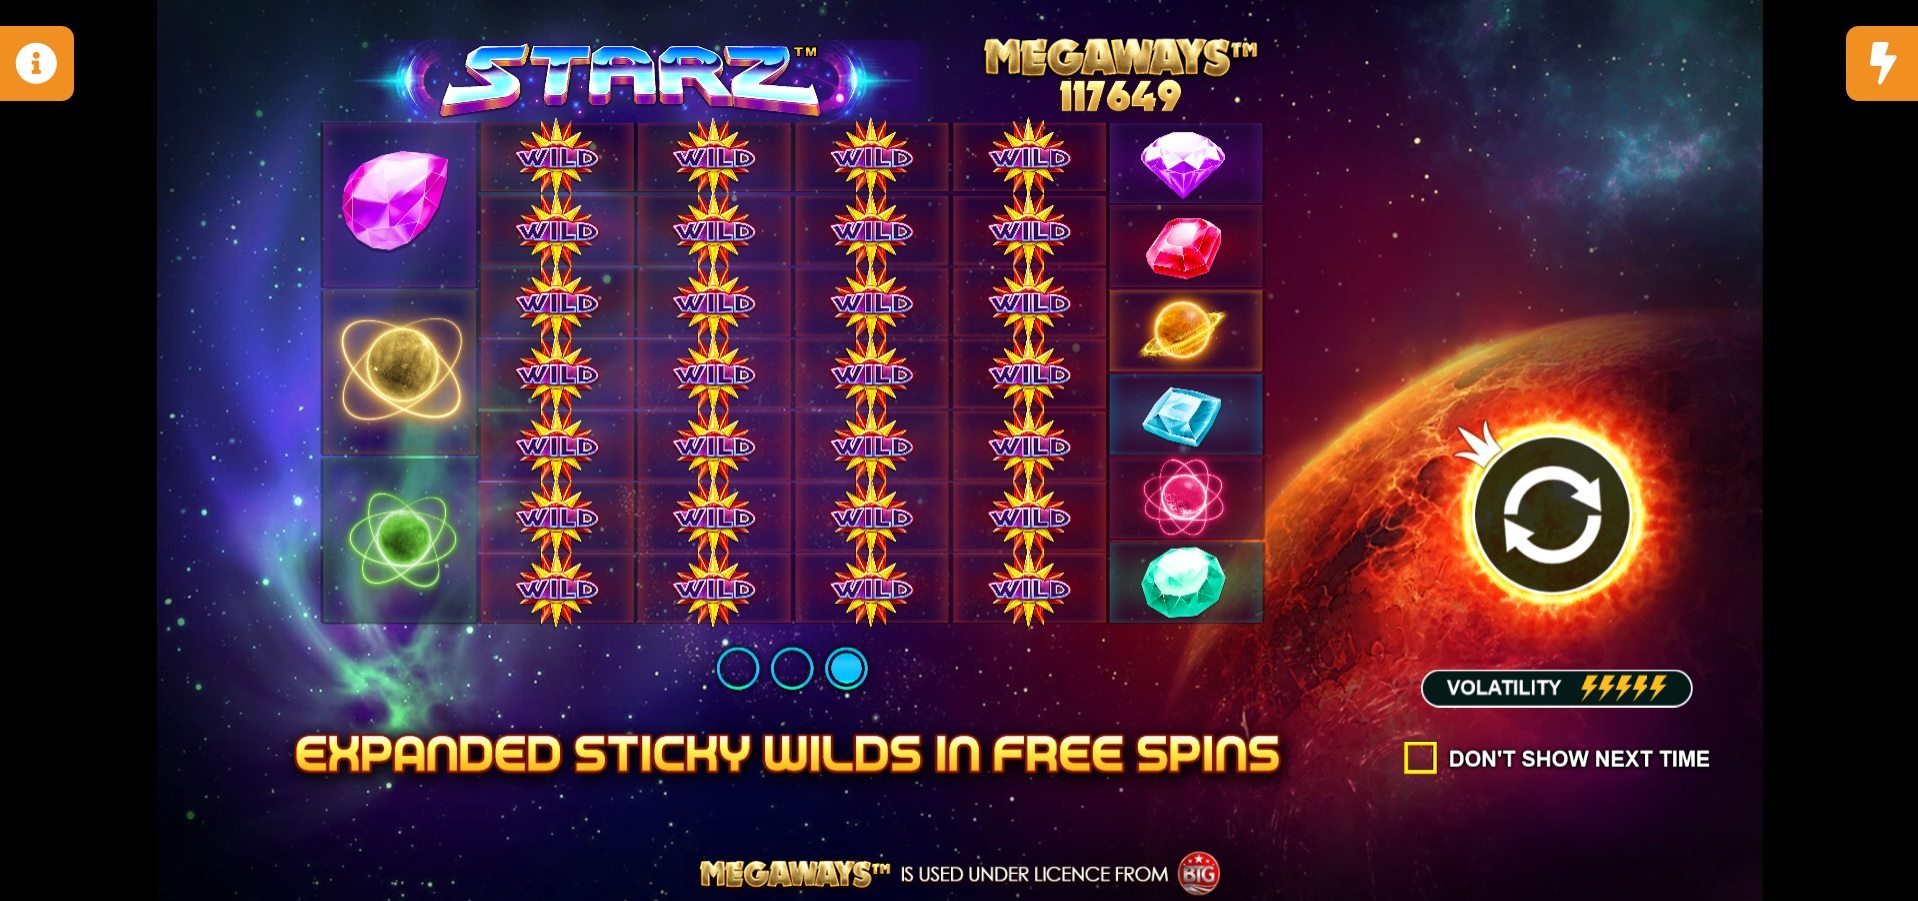 How to win big in Starz Megaways – Free Spins